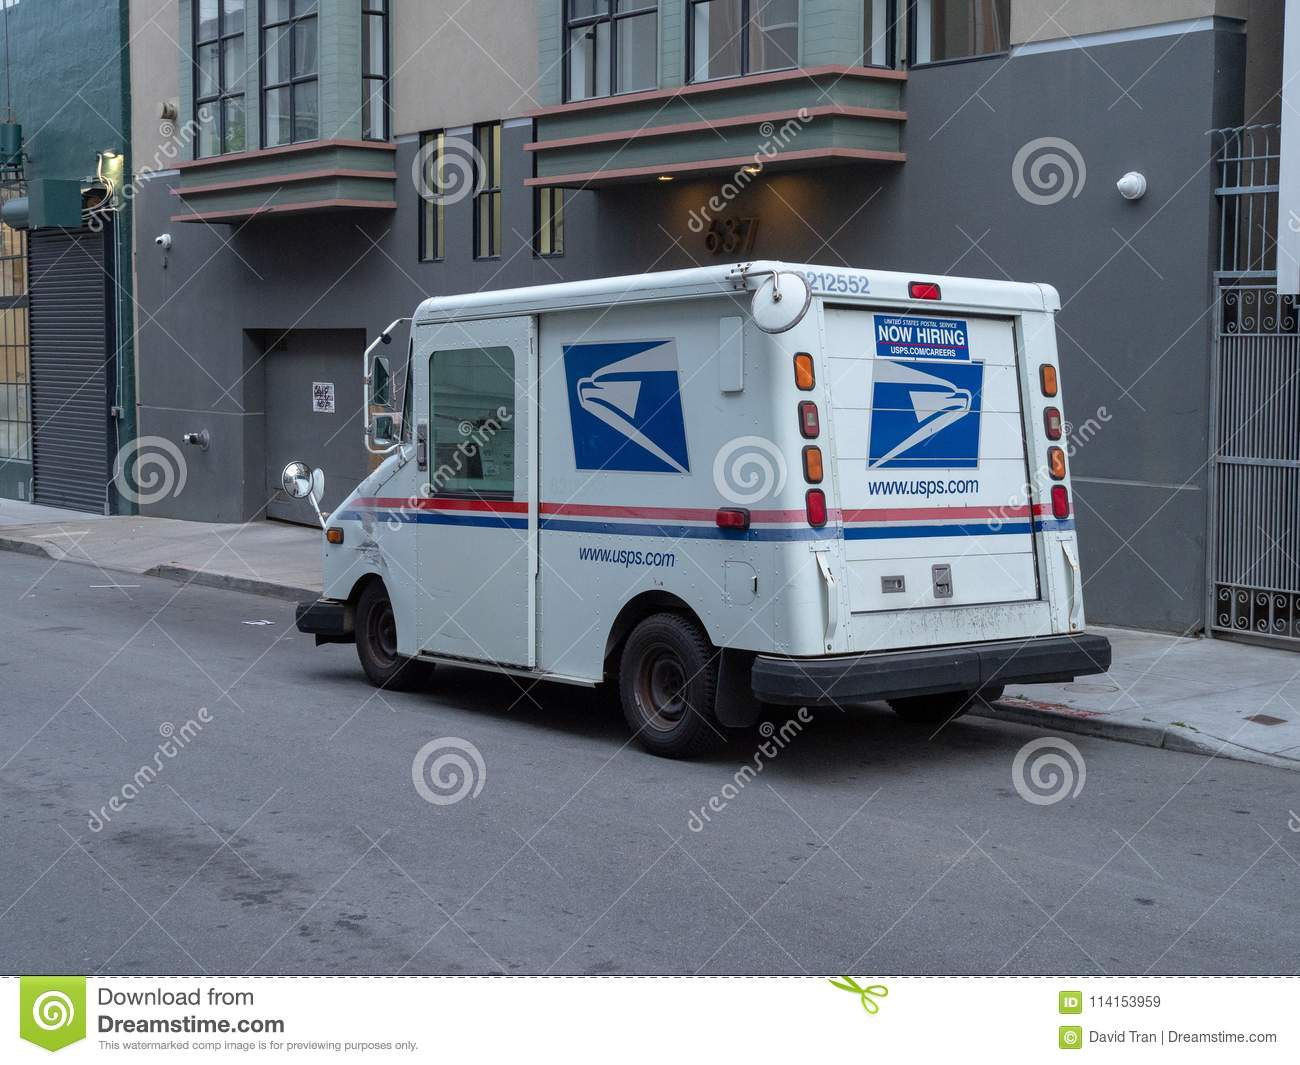 United States Postal Service delivery truck in the city